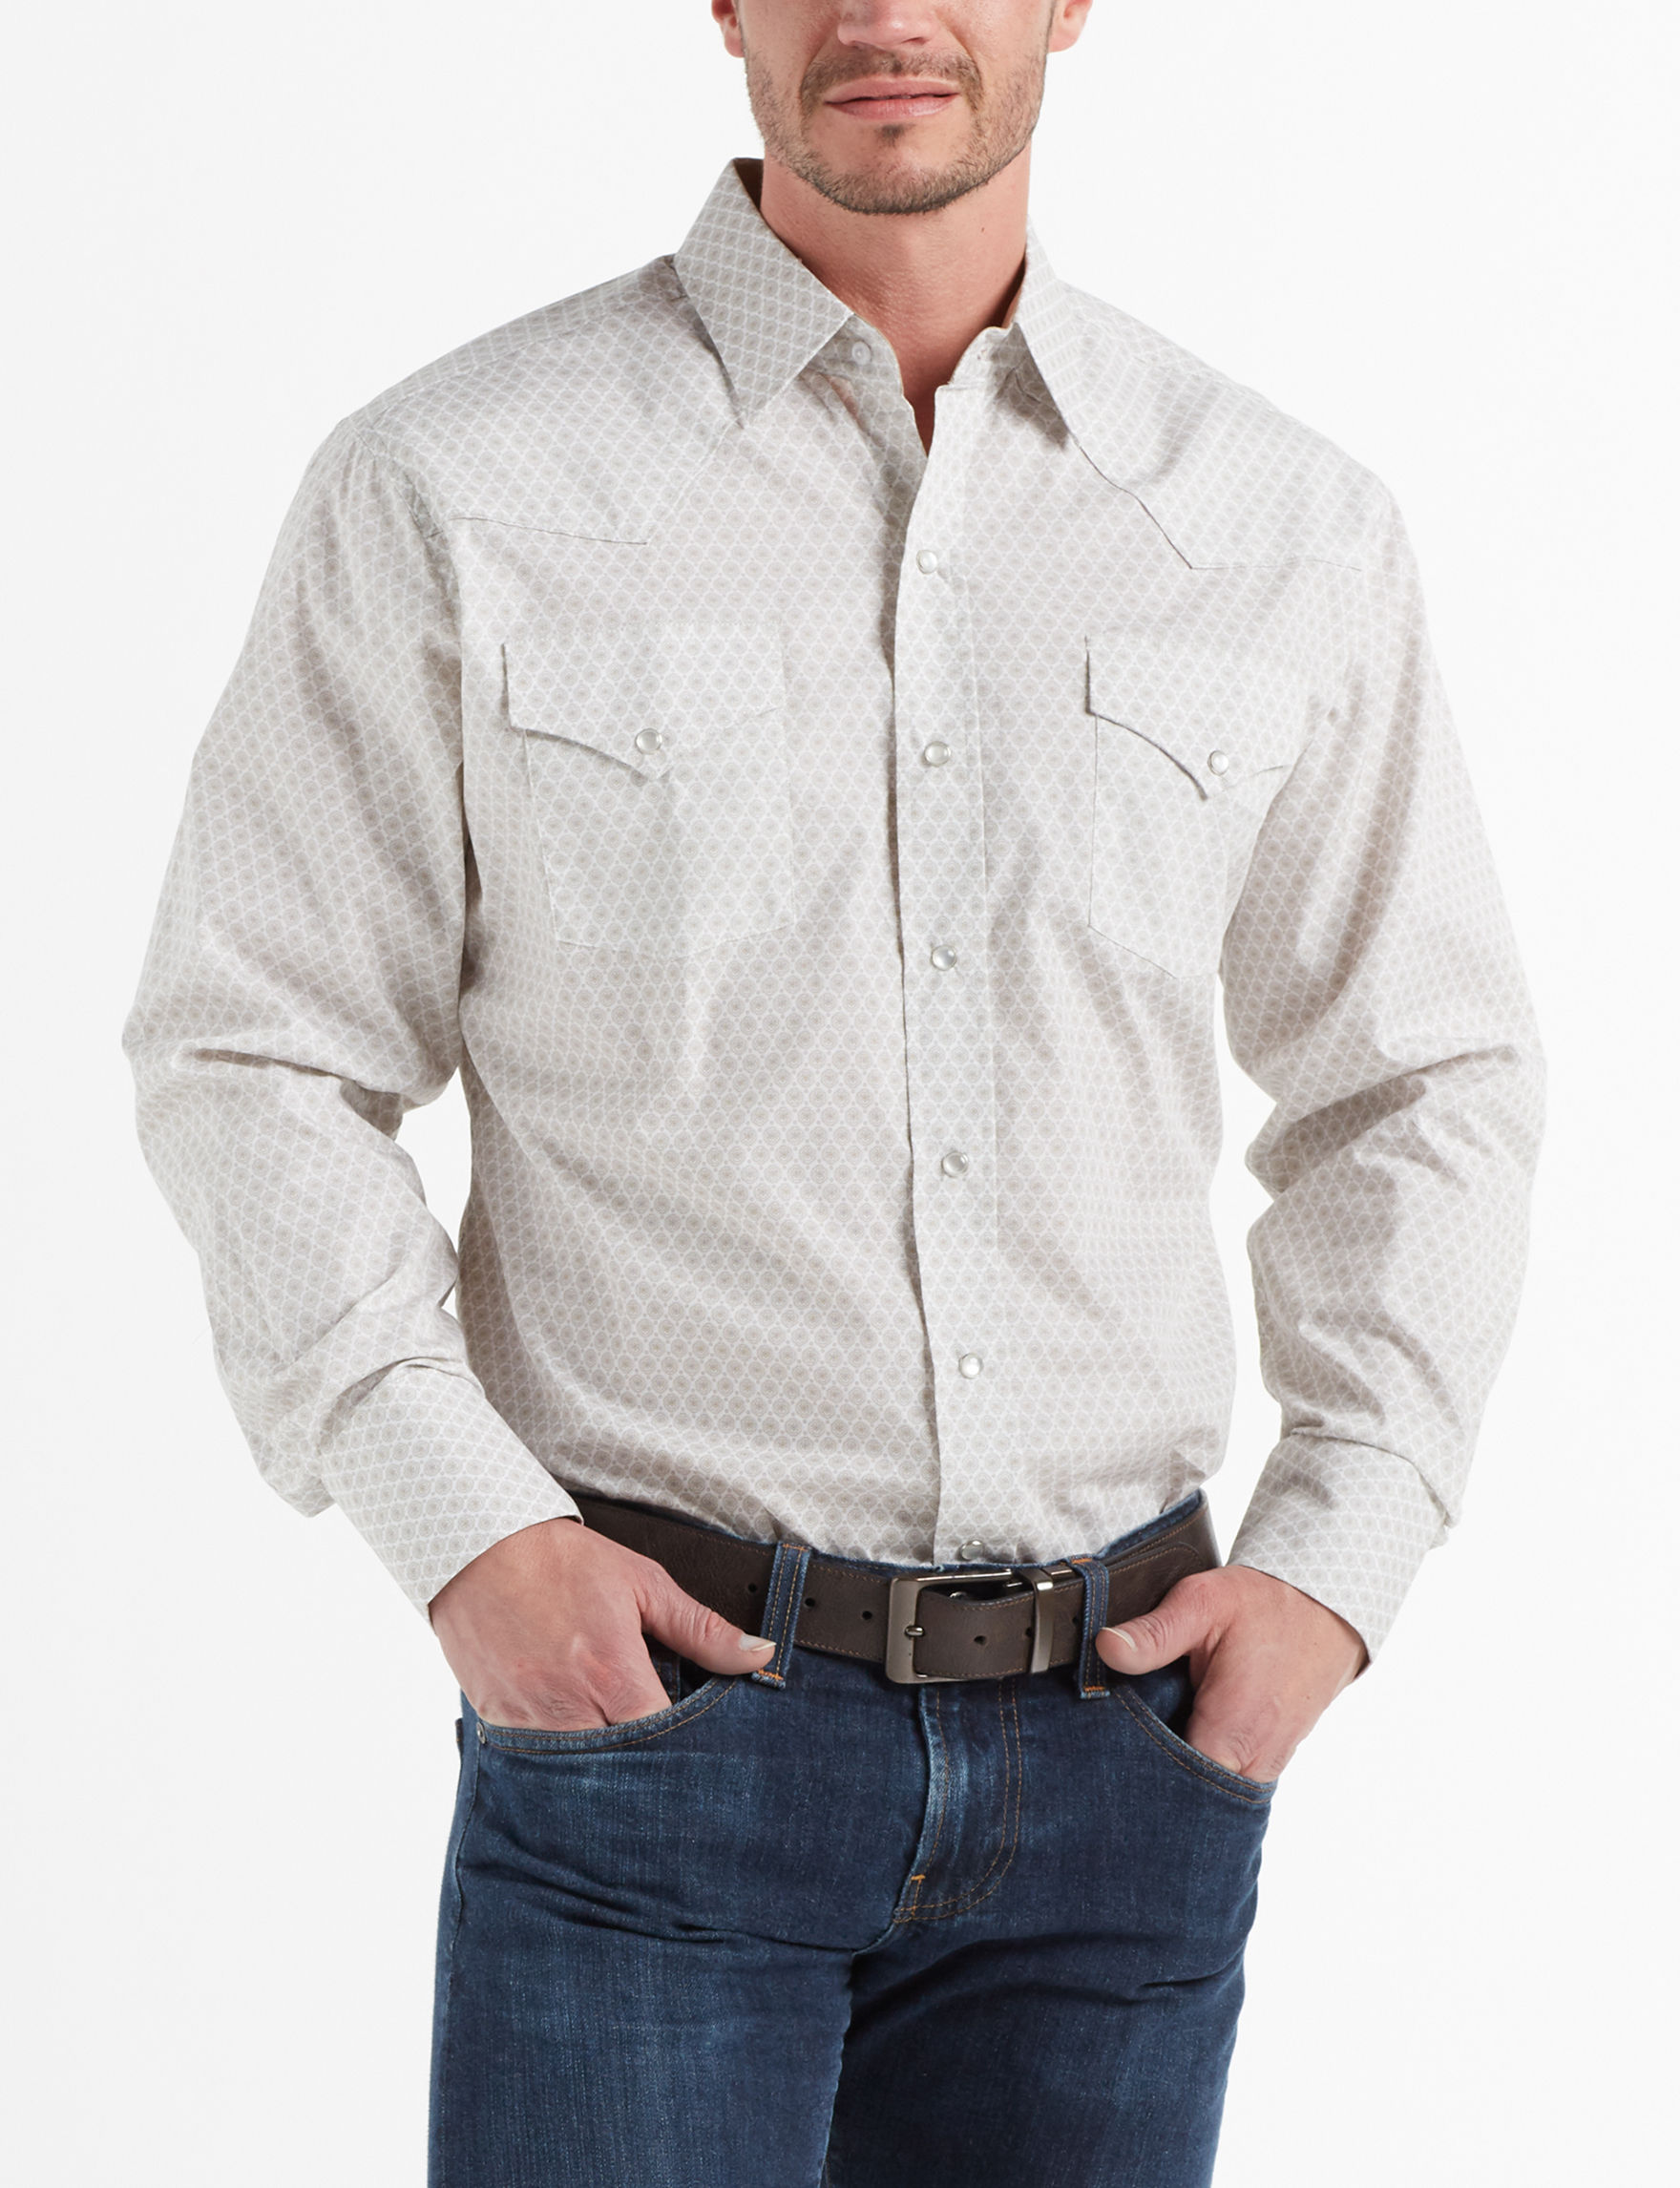 Ely Cattleman Tan Multi Casual Button Down Shirts